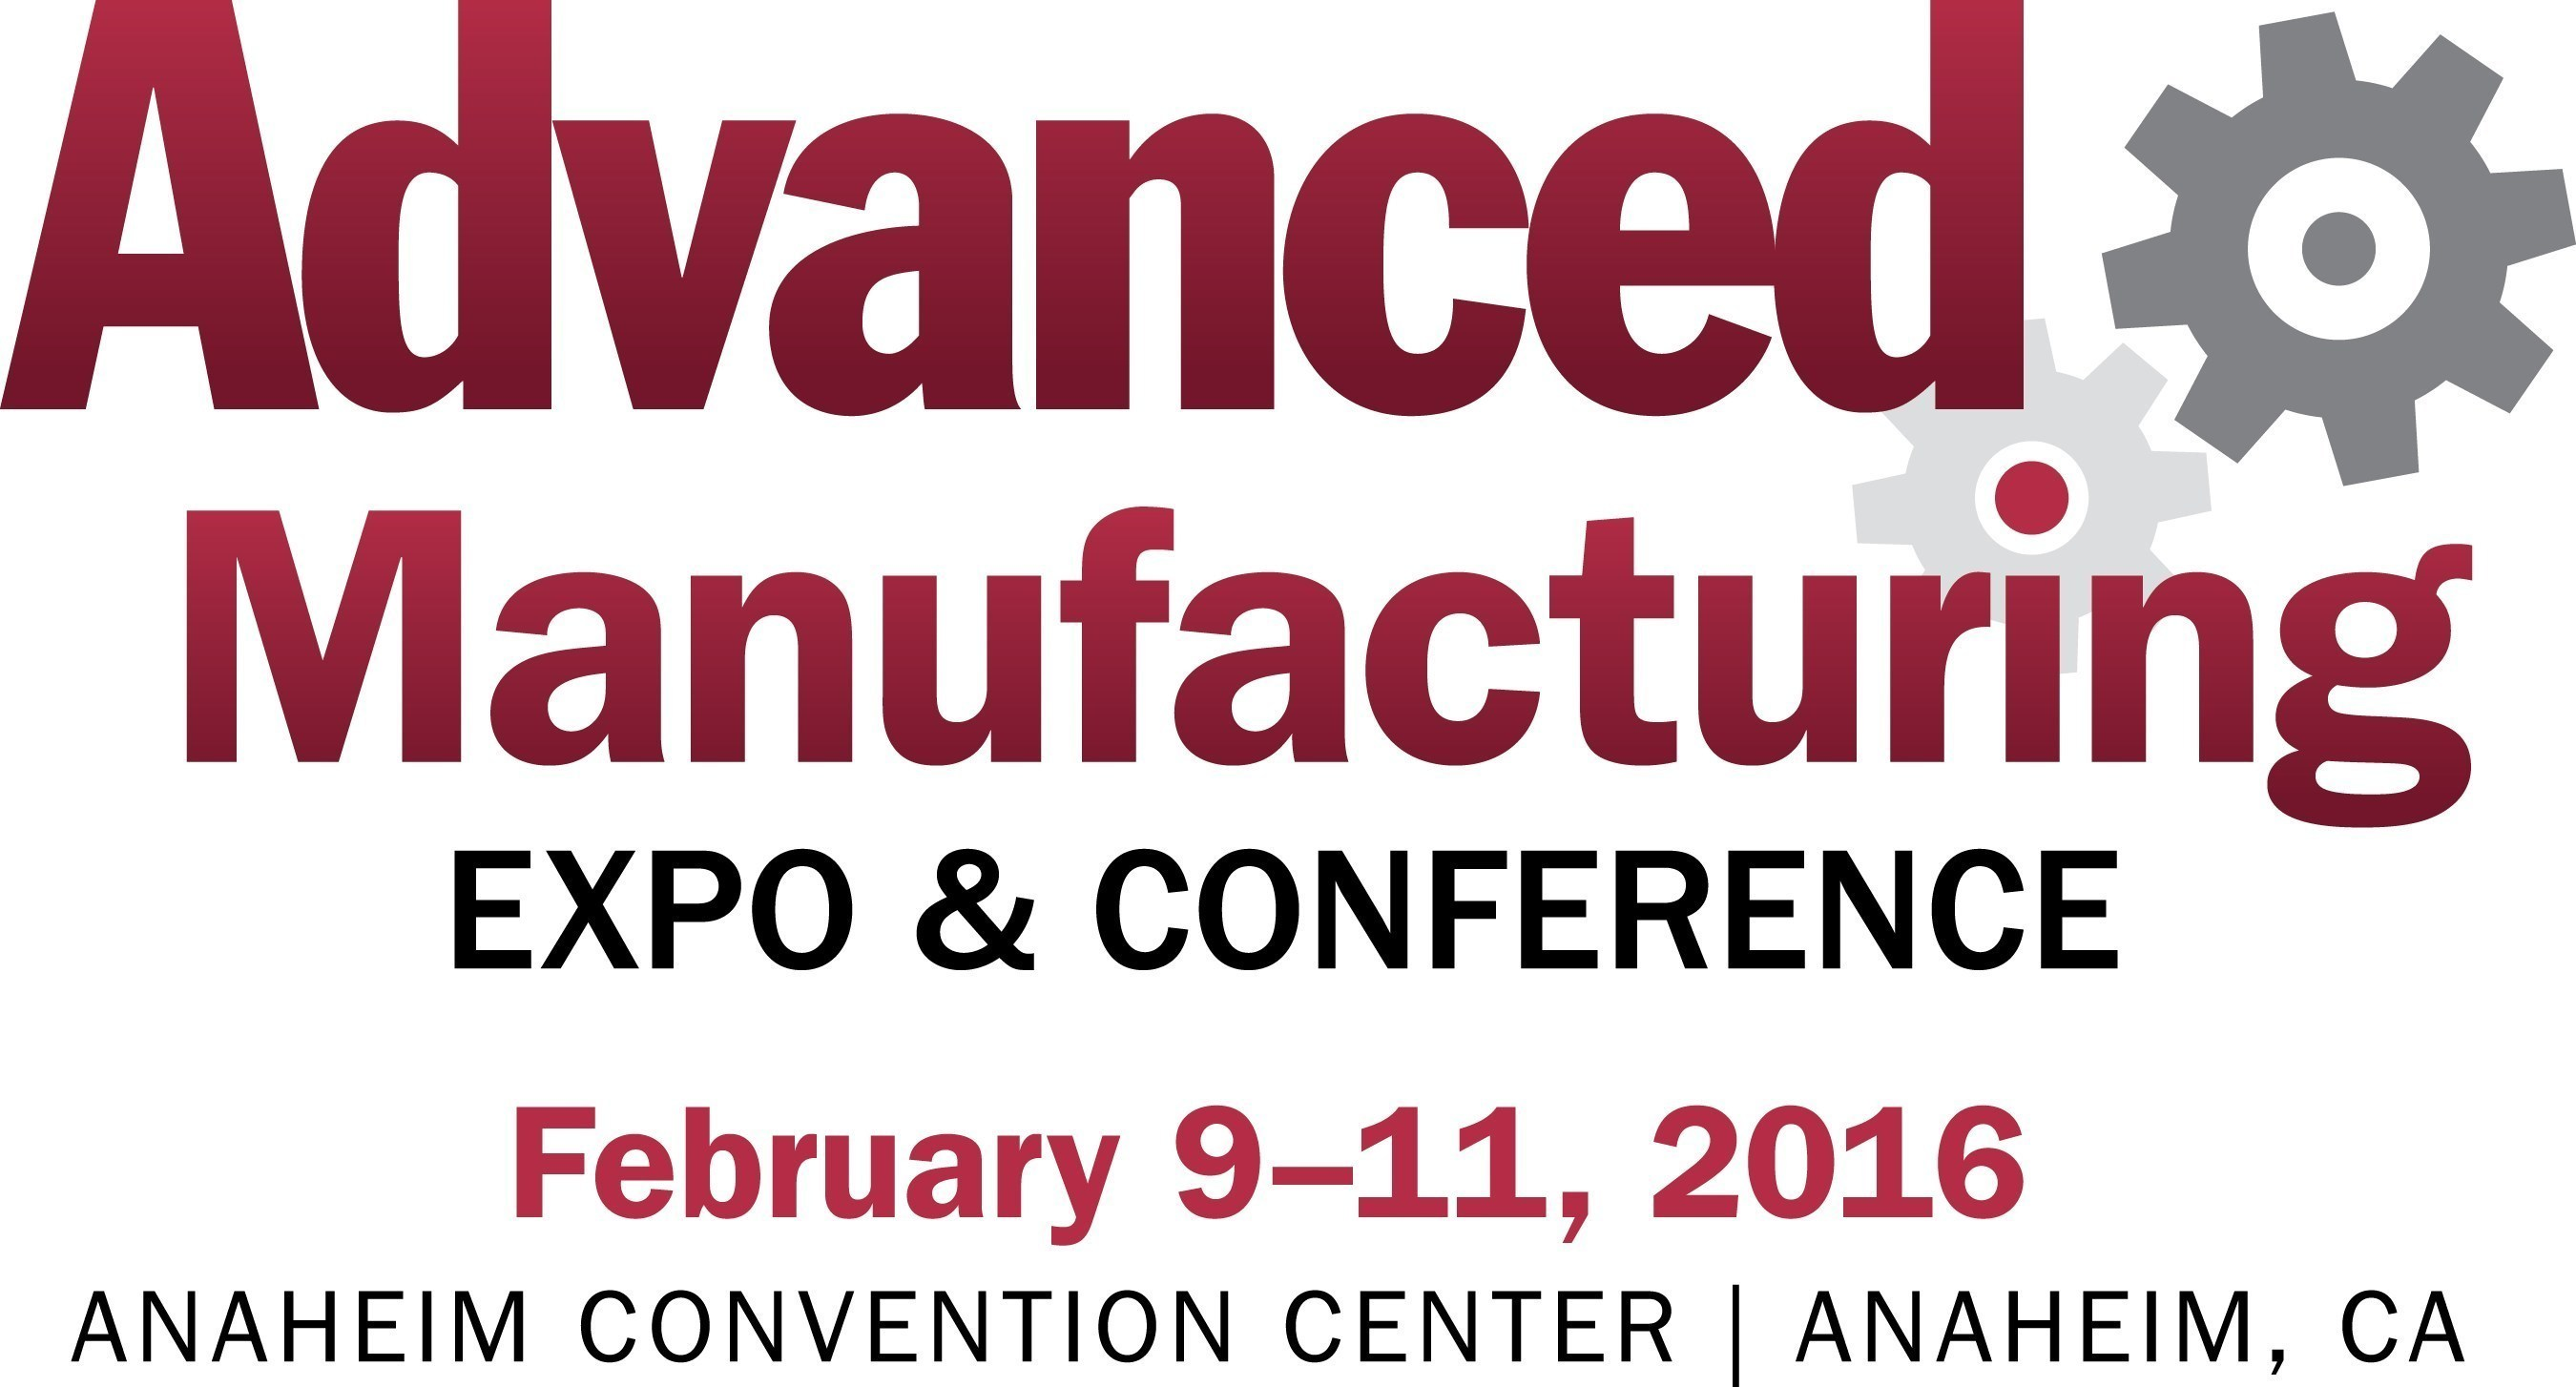 Advanced Manufacturing Expo & Conference Anaheim Covers All Corners